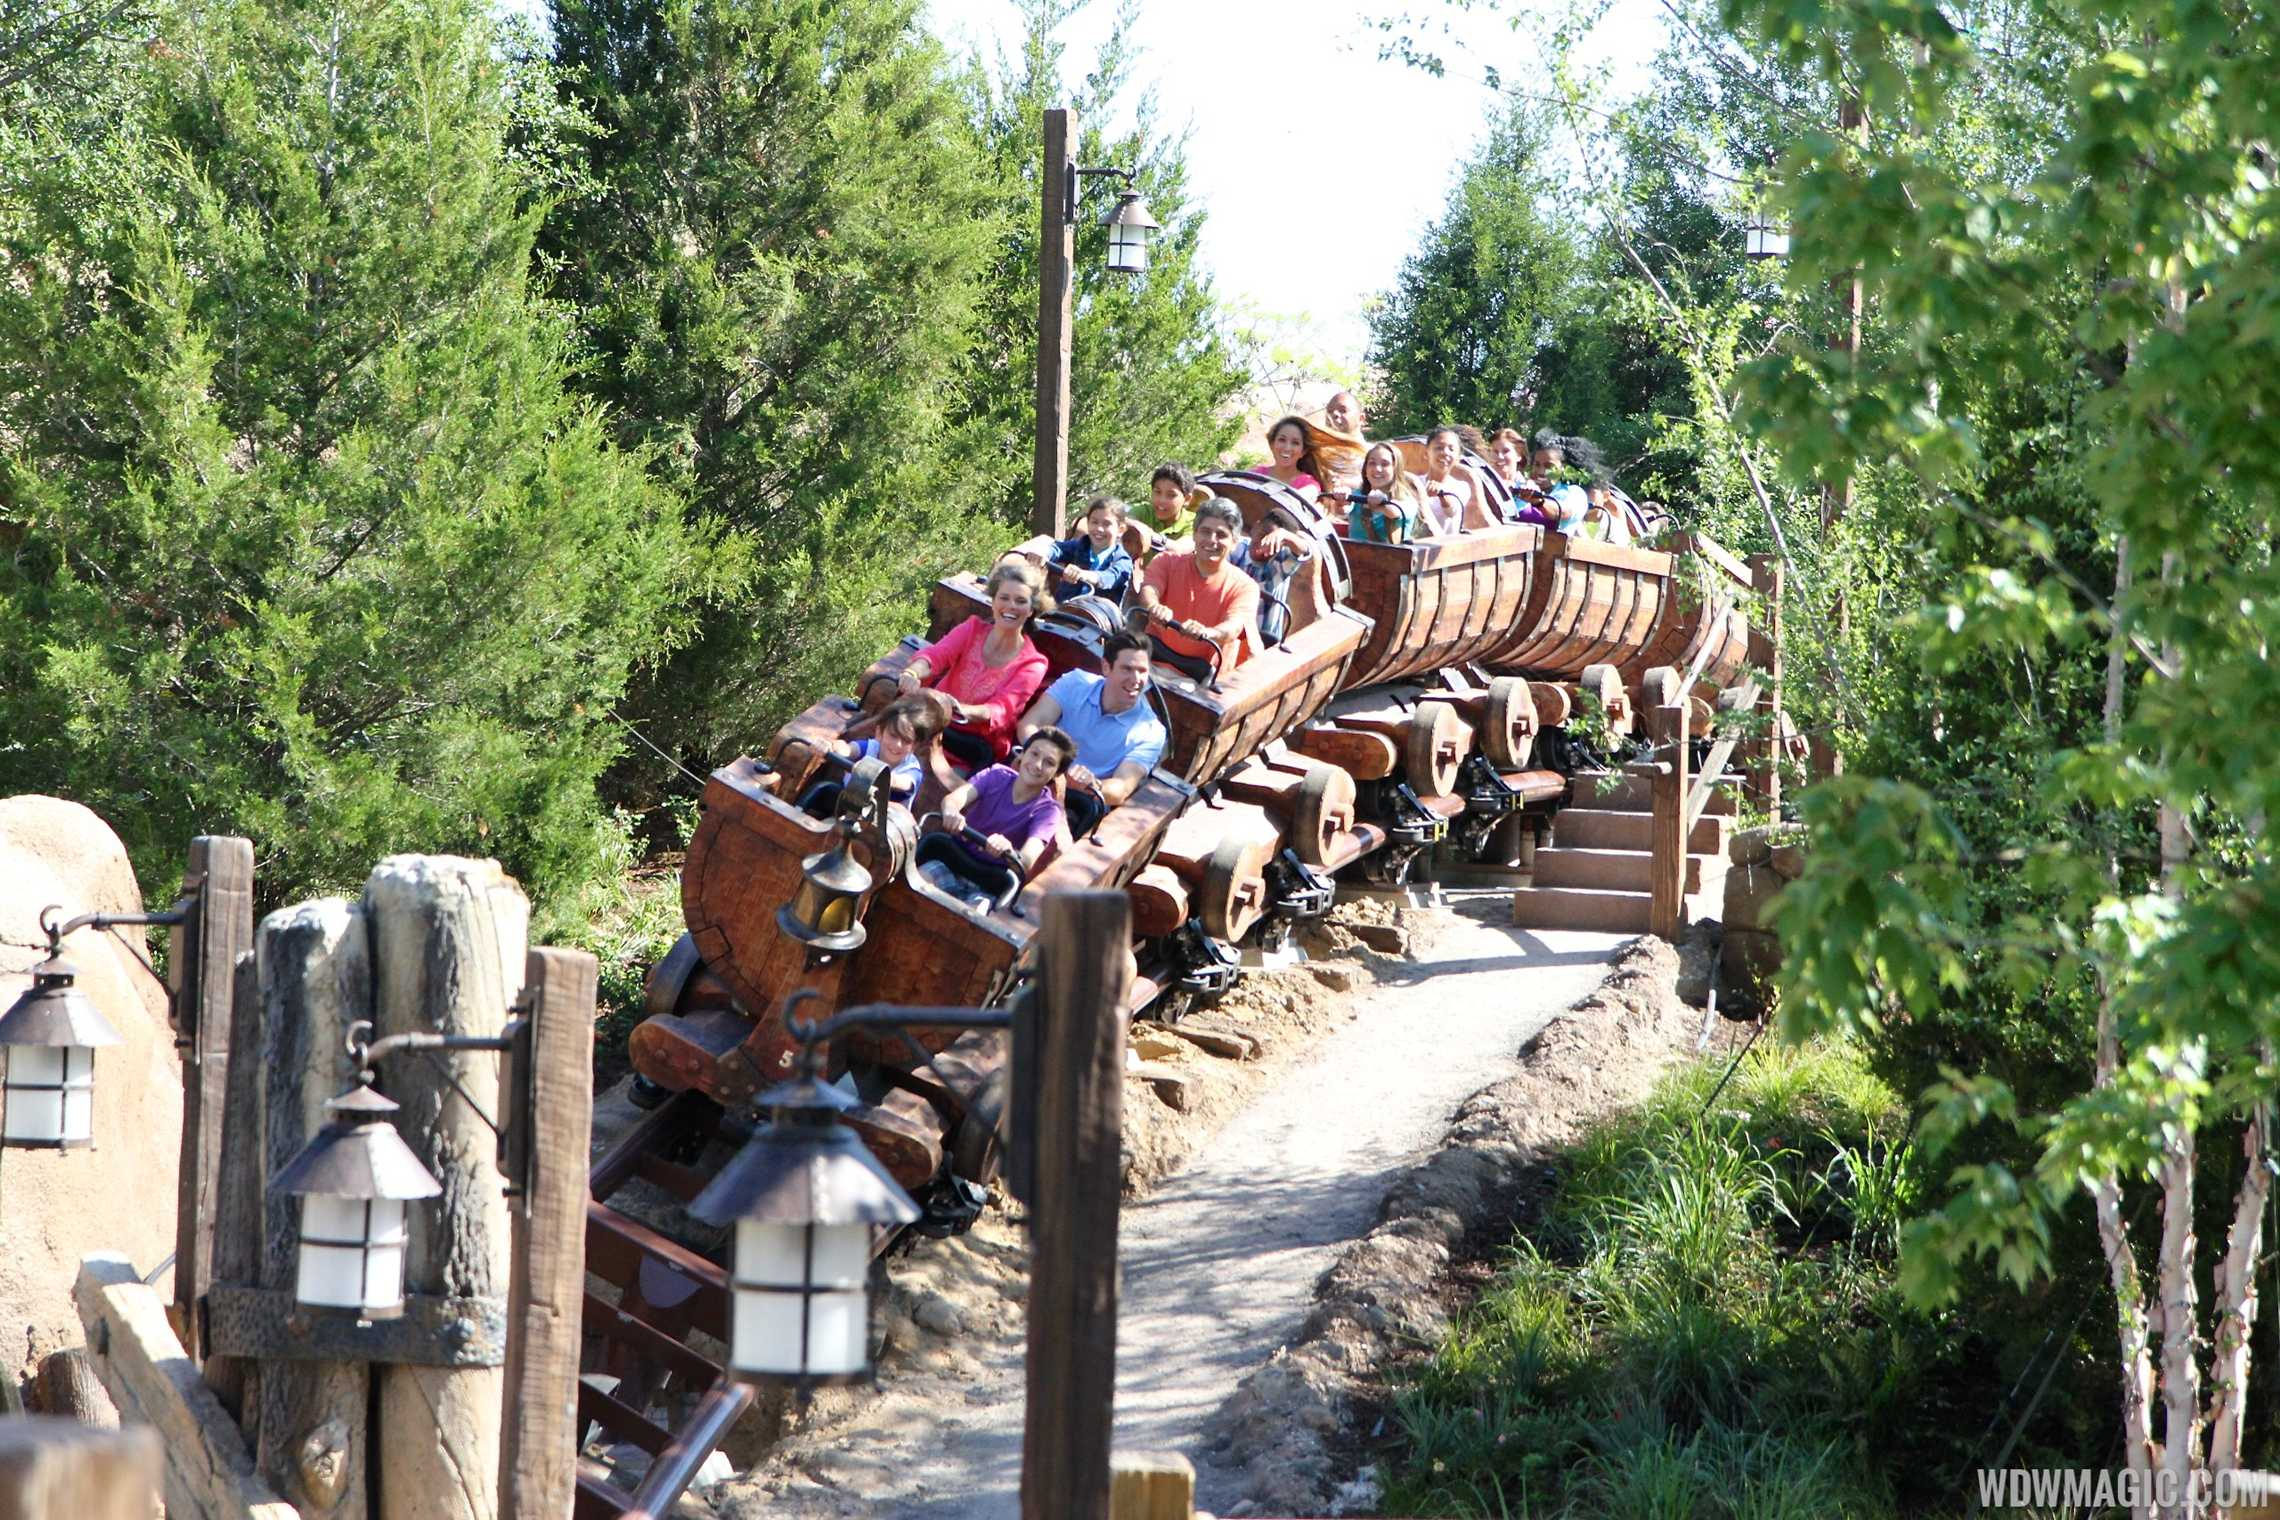 Actors ride the Seven Dwarfs Mine Train coaster